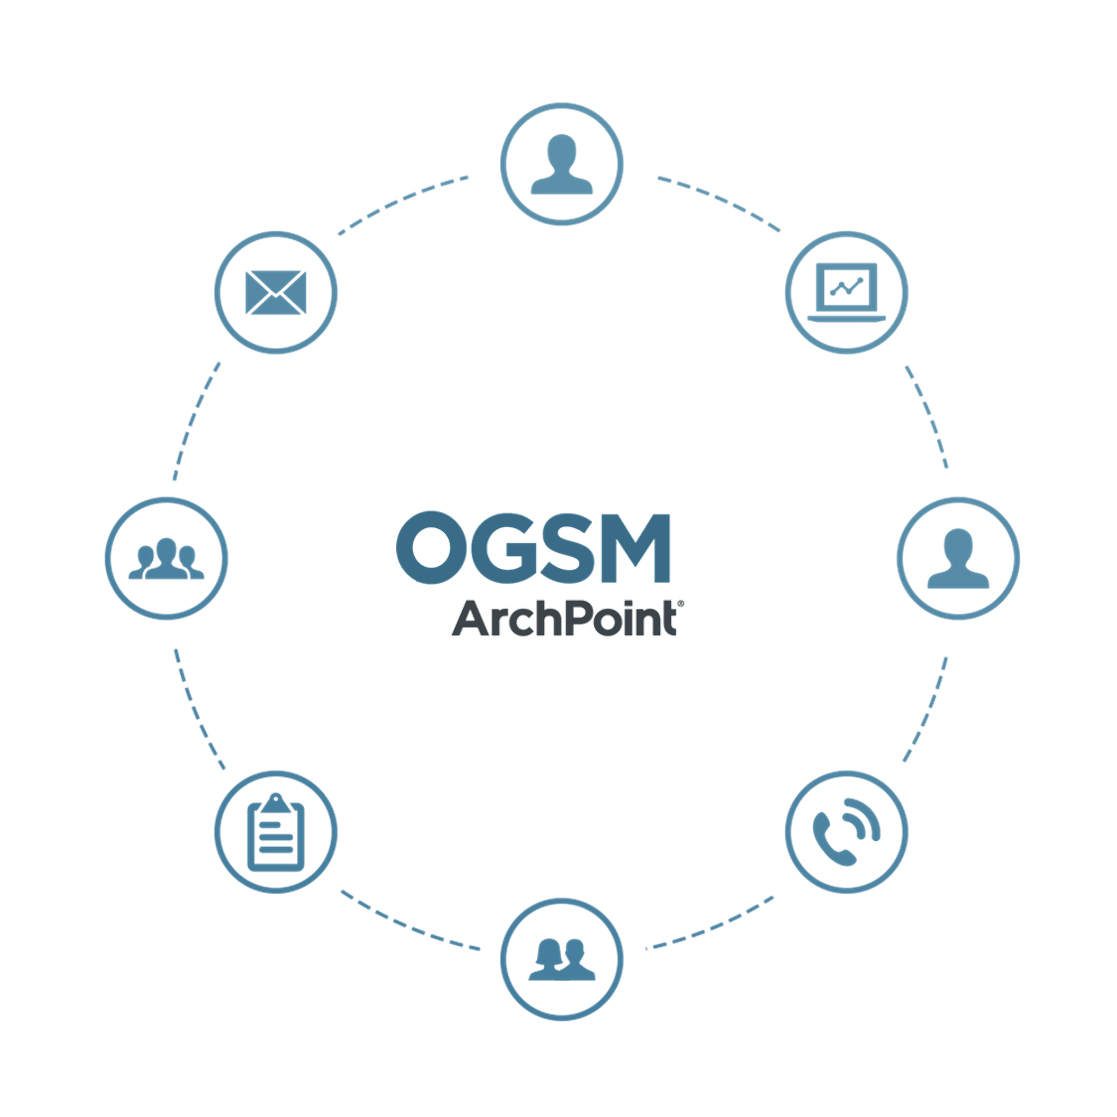 diagram of ArchPoint's OGSM simplified process